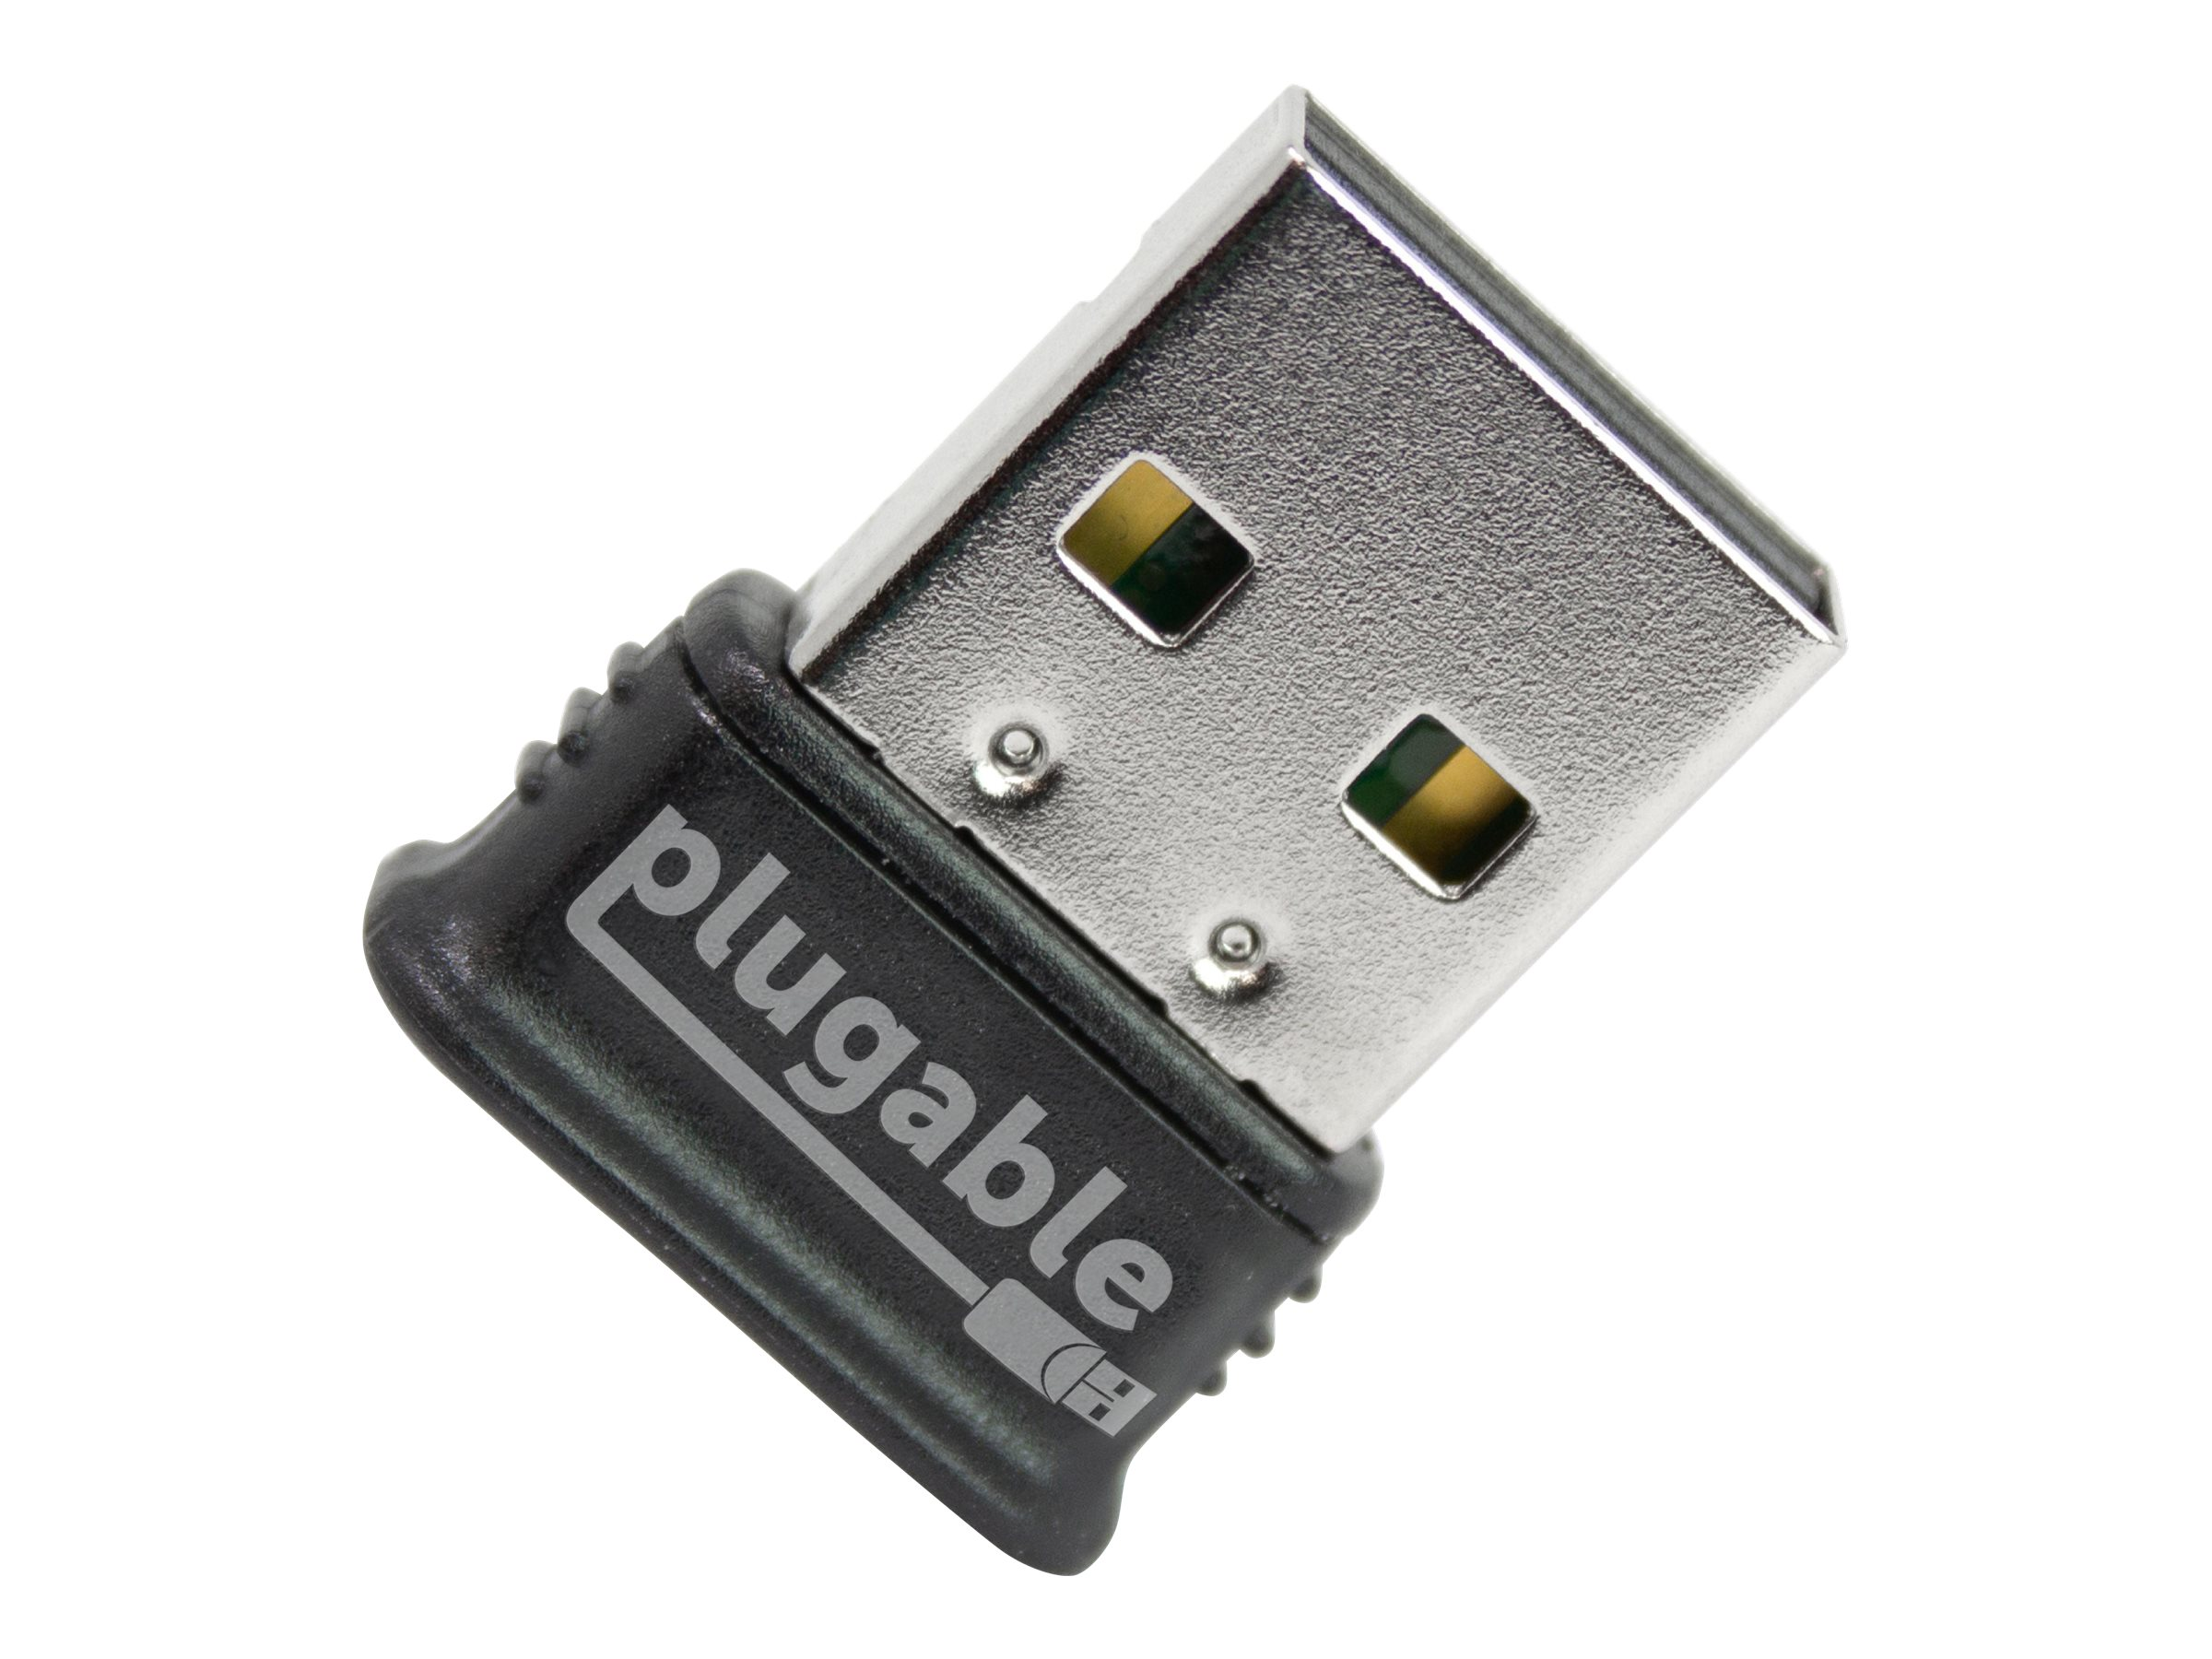 Plugable - network adapter